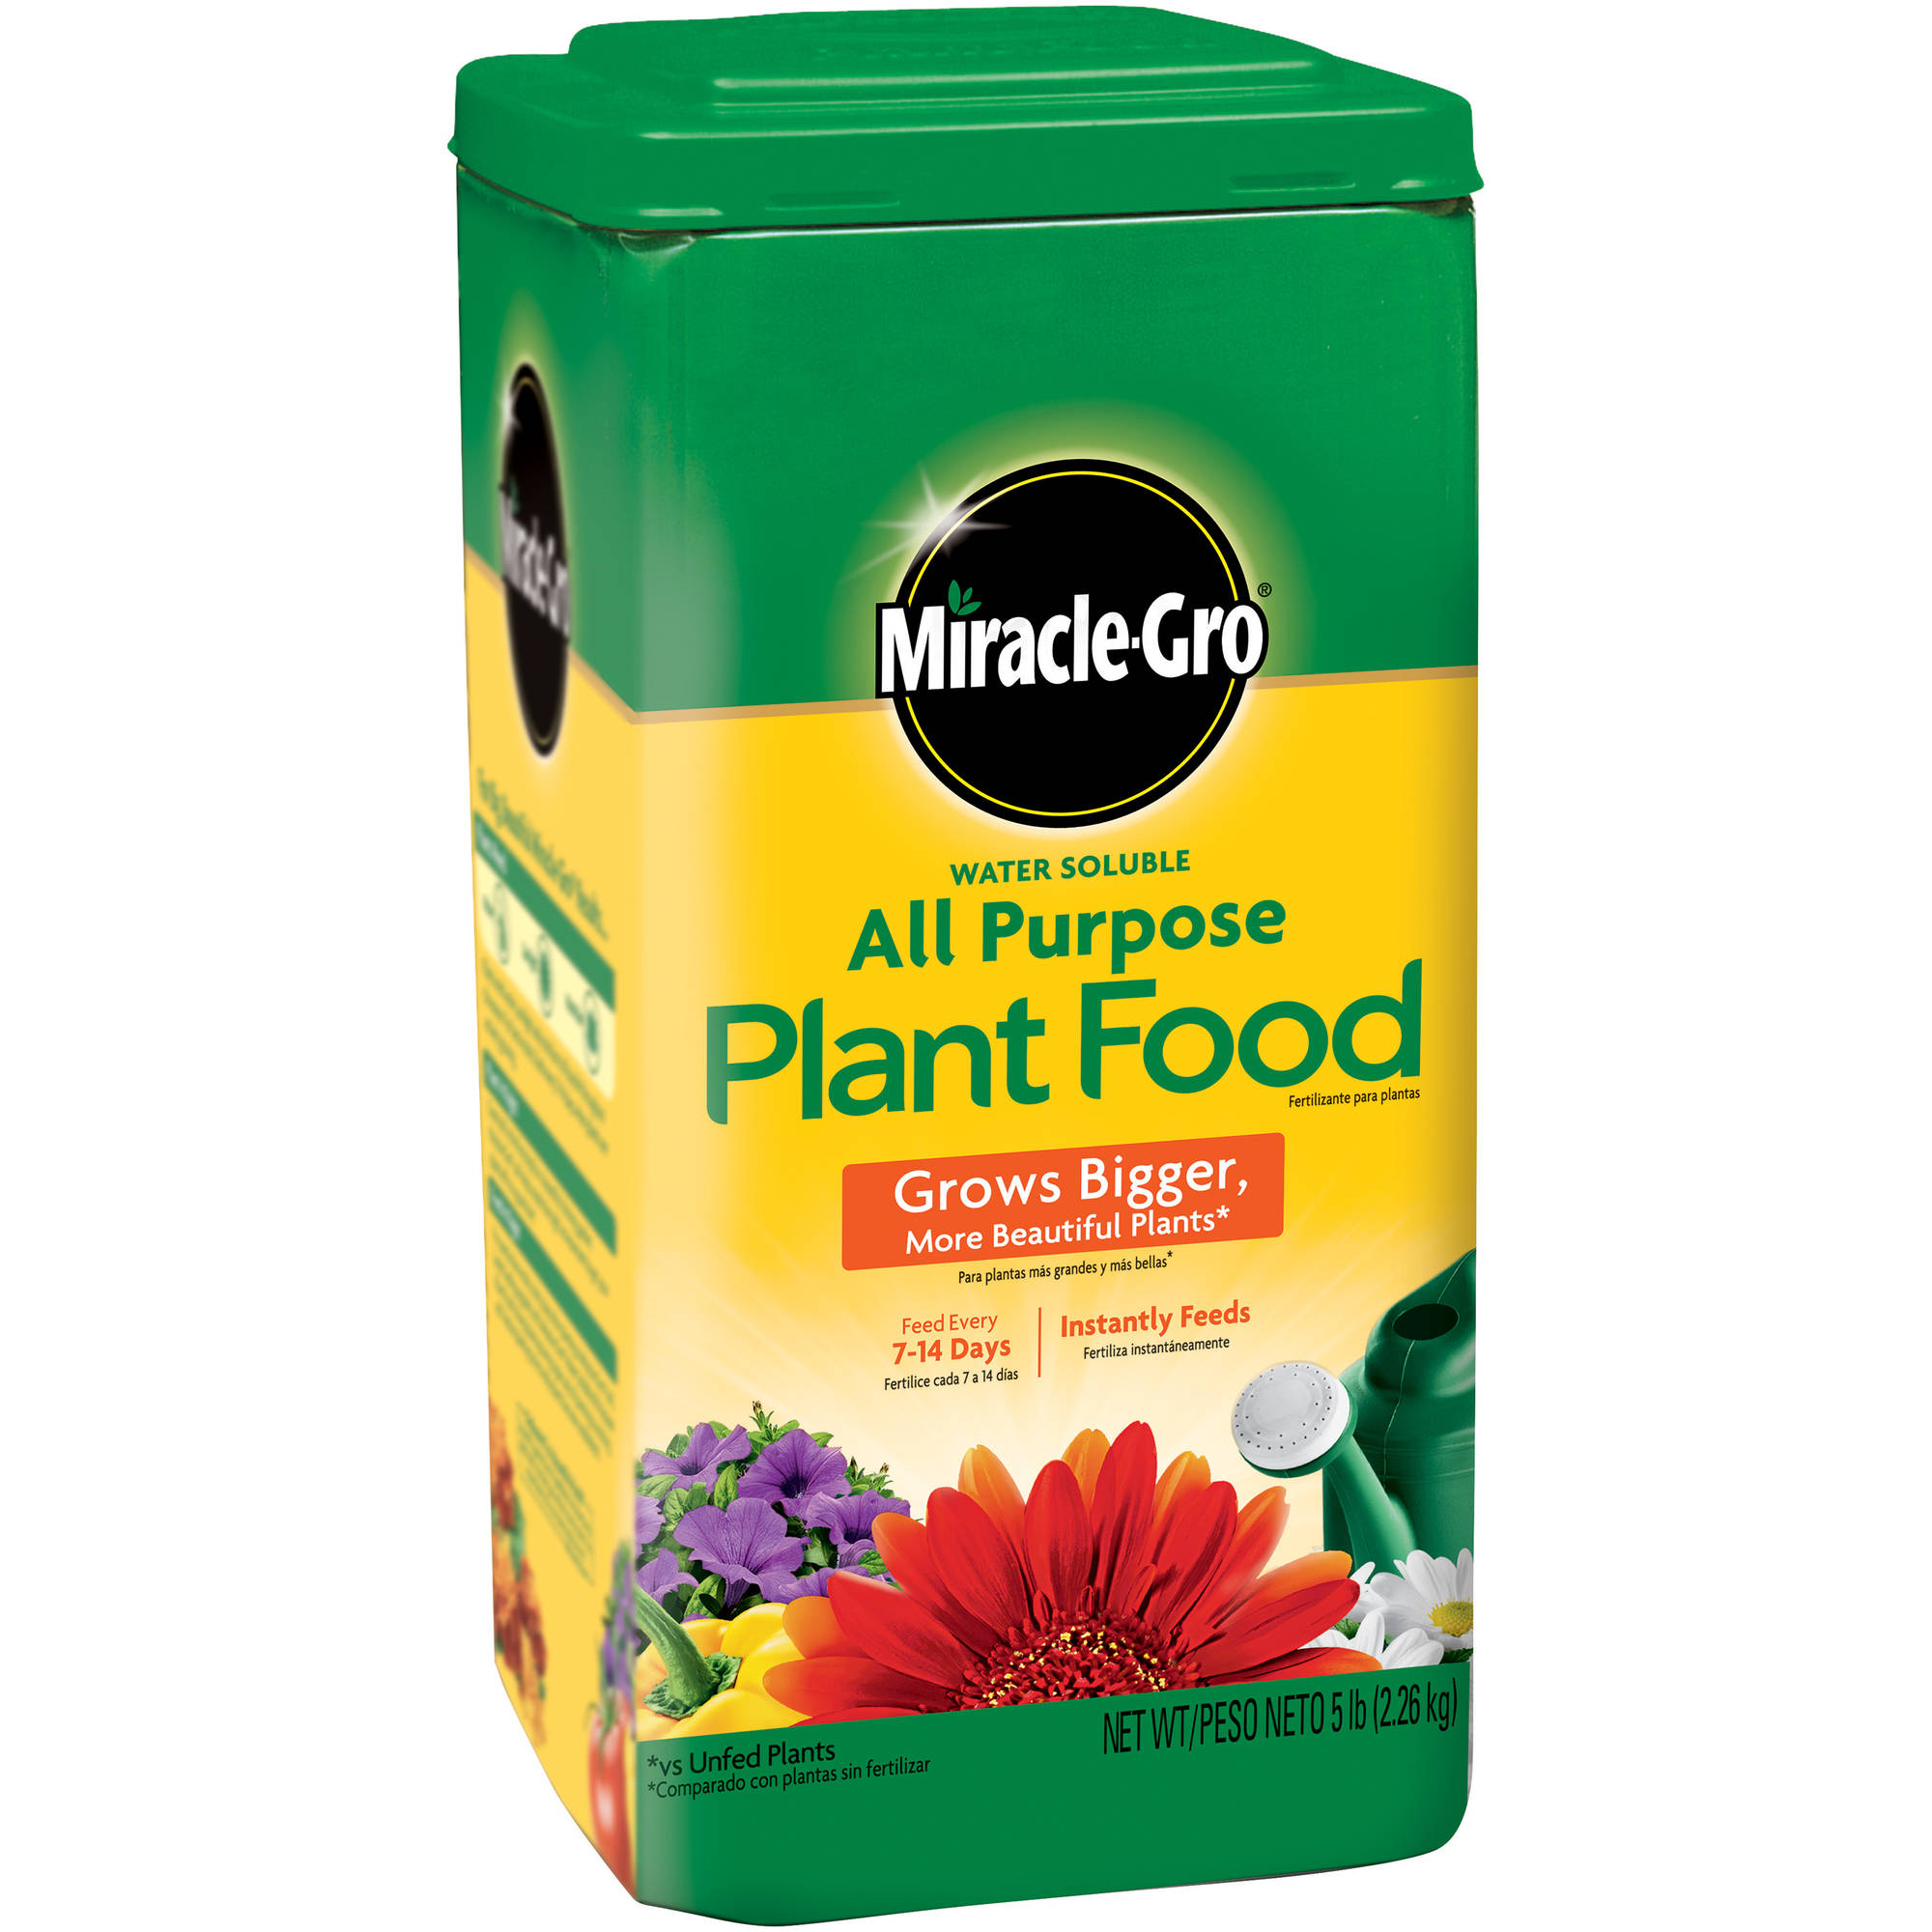 Miracle-Gro Water Soluble All Purpose Plant Food, 5#